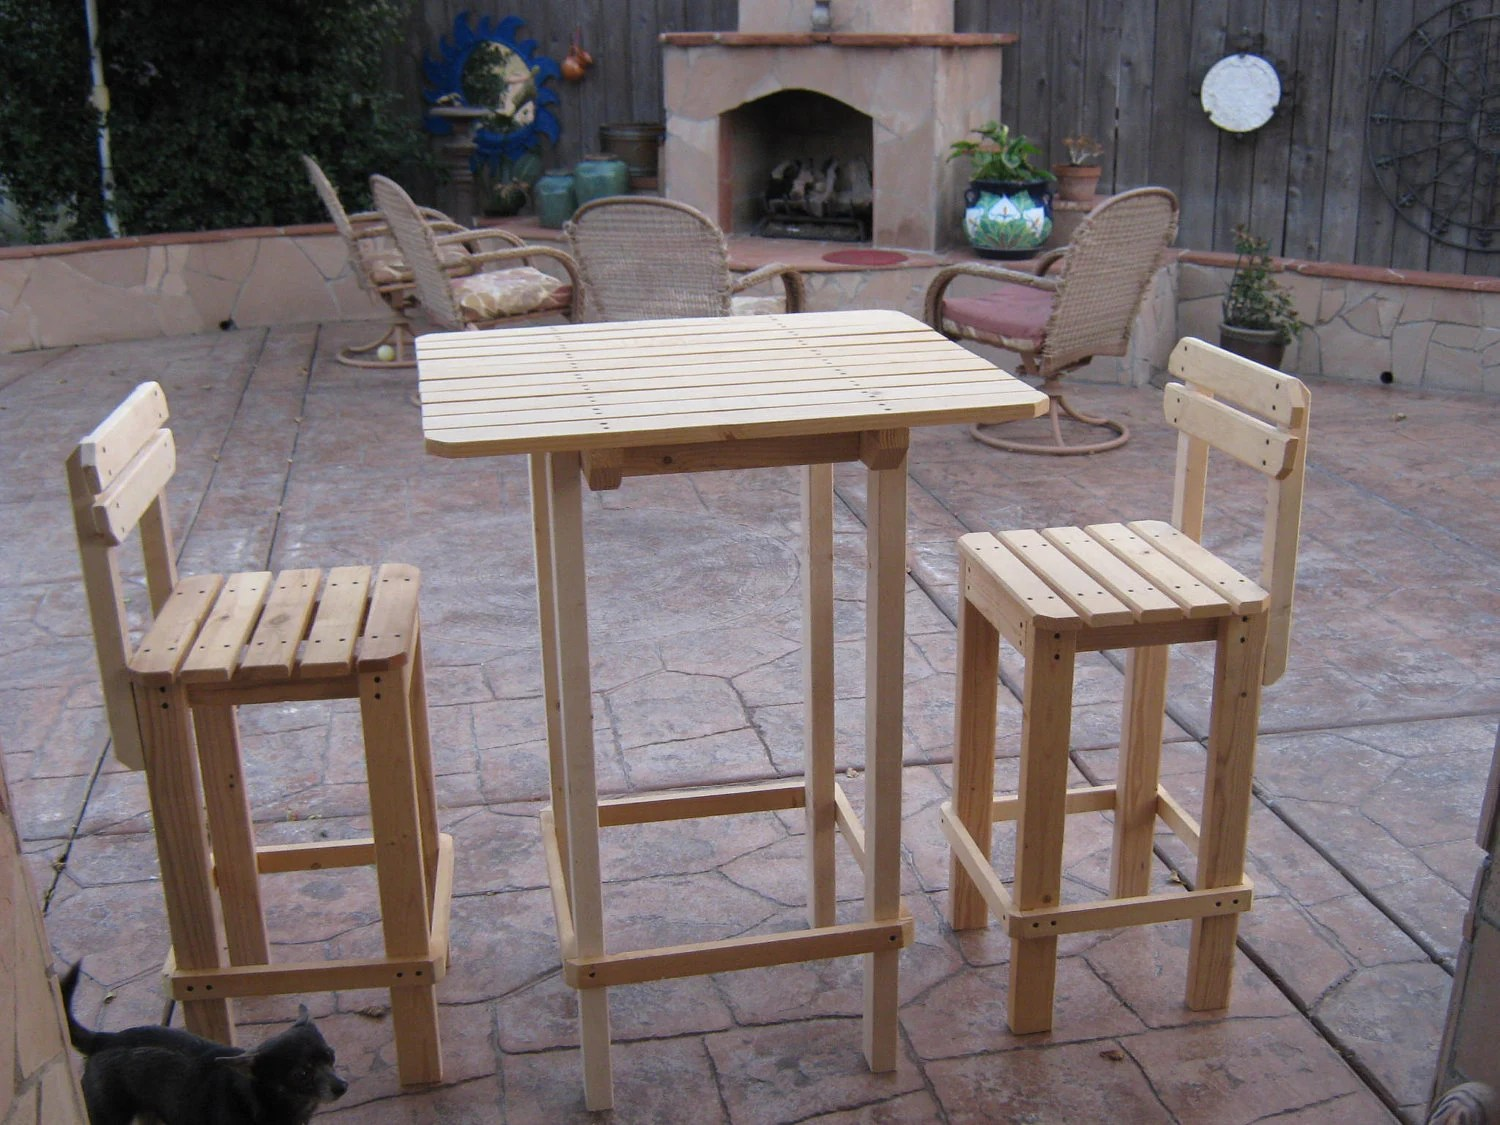 Diy Patio Table And Chairs Diy Plans To Make Bar Table And Stool Set By Wingstoshop